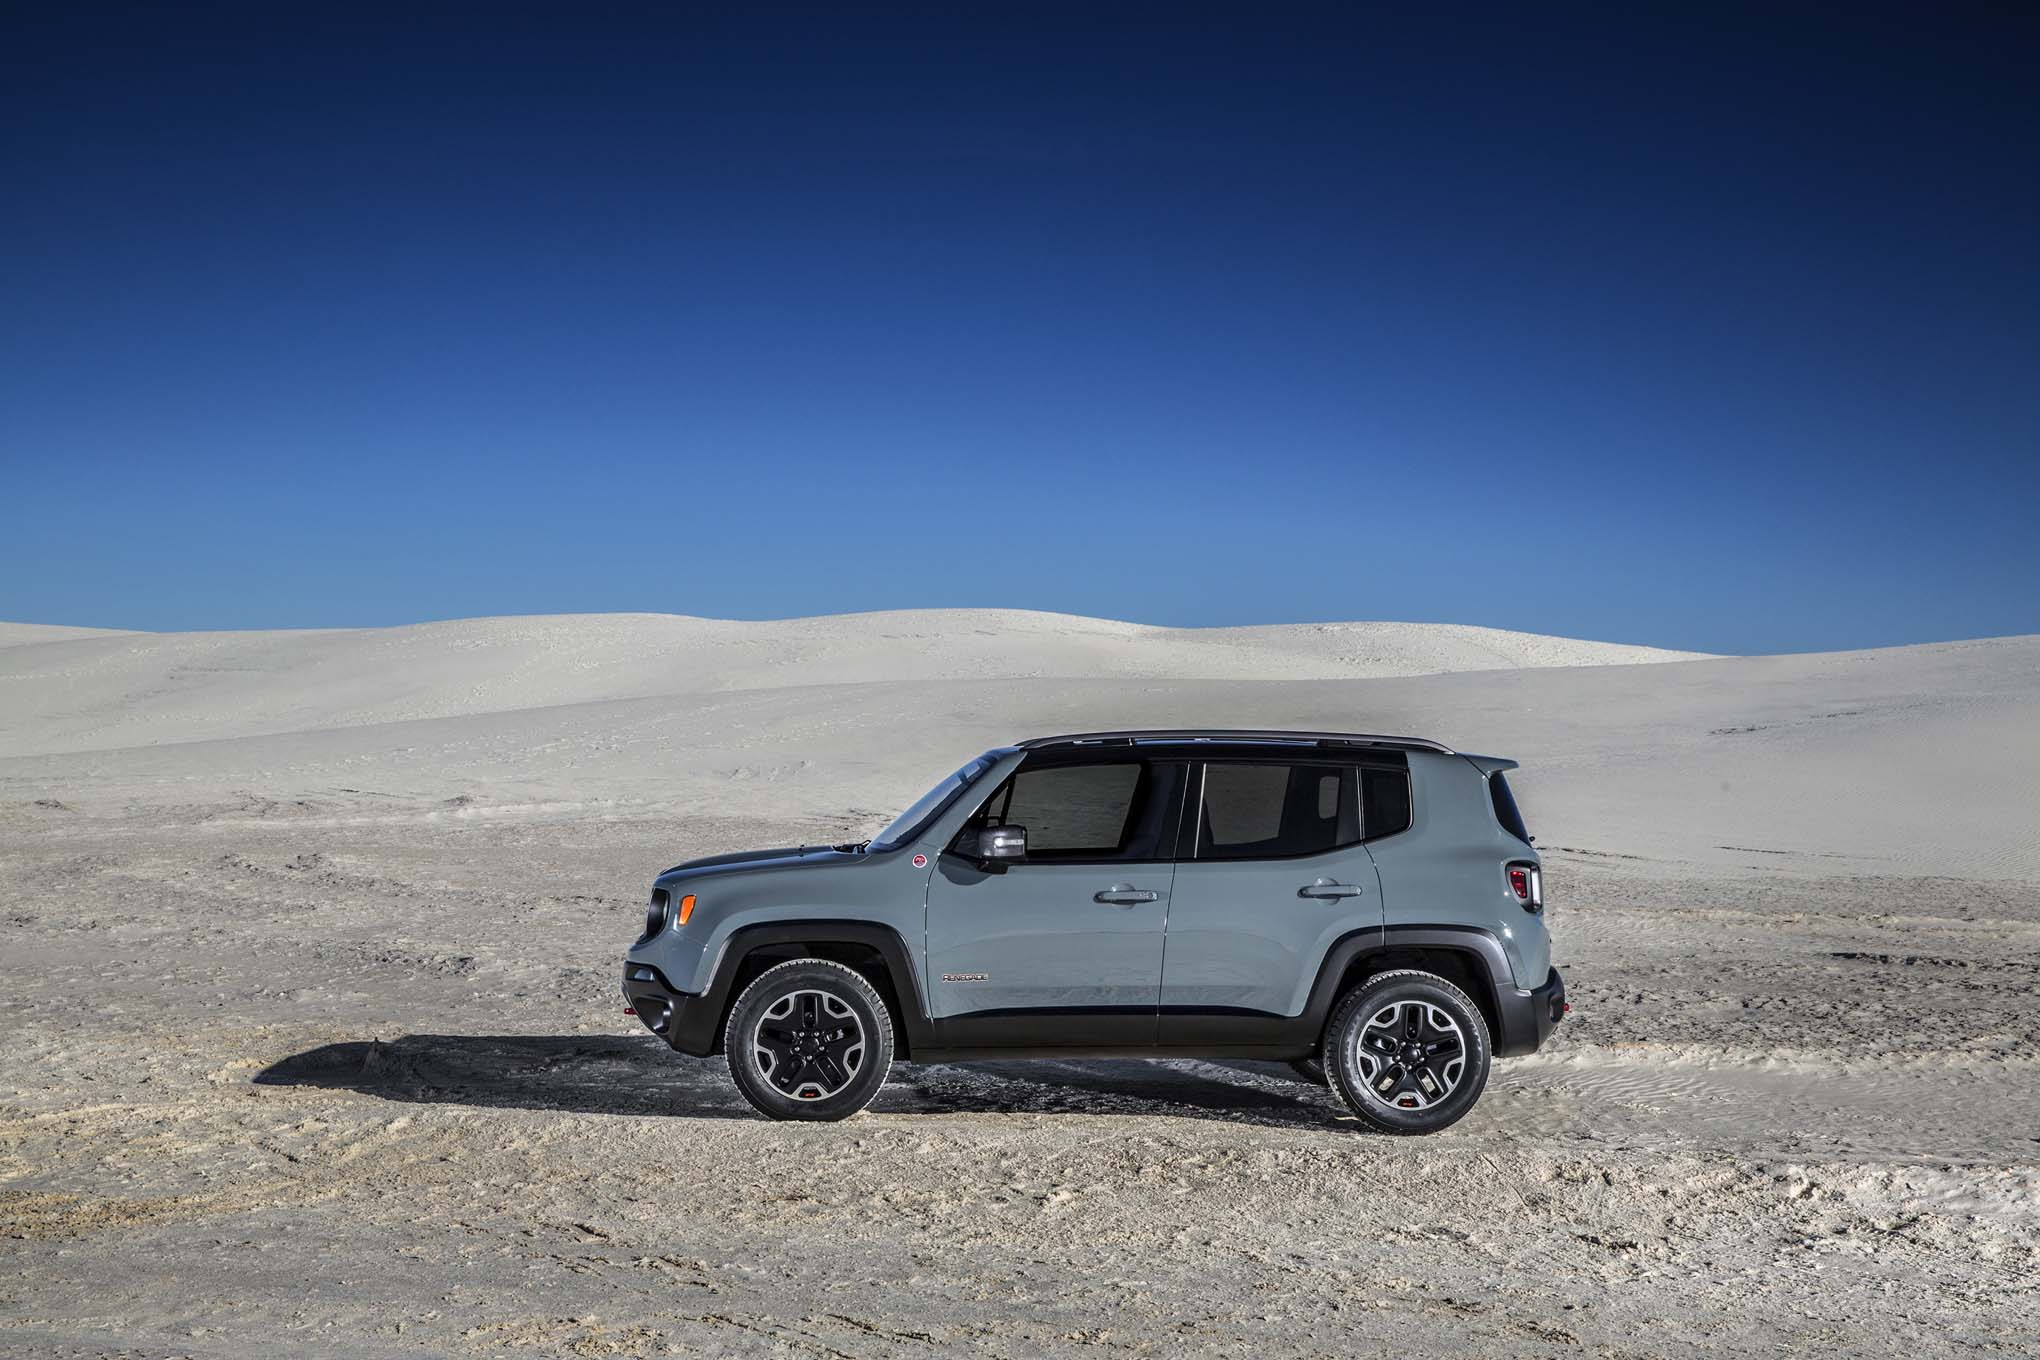 2015 Jeep Renegade Trailhawk side